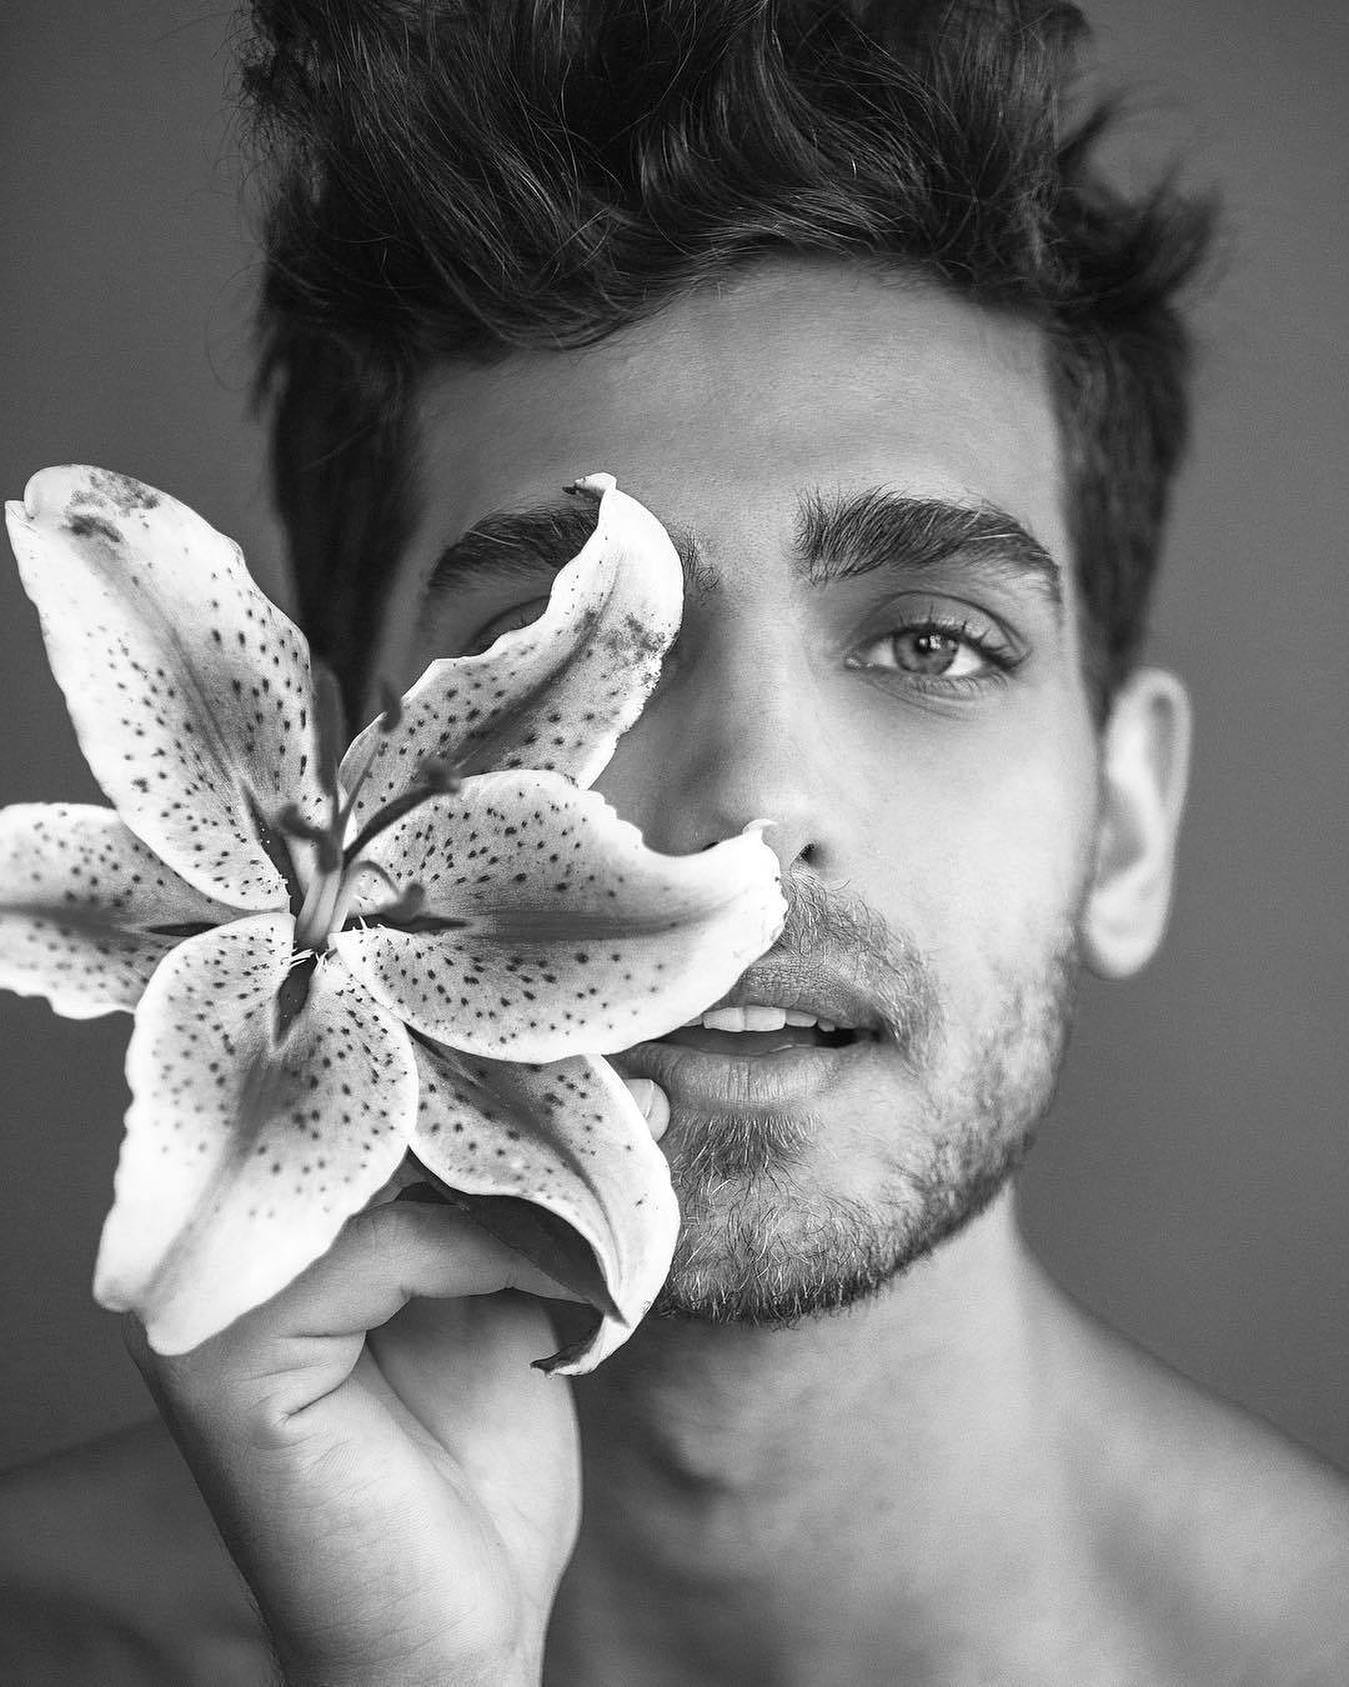 #men #flowers #face #blackandwhite #hotmen #handsomeboys #art